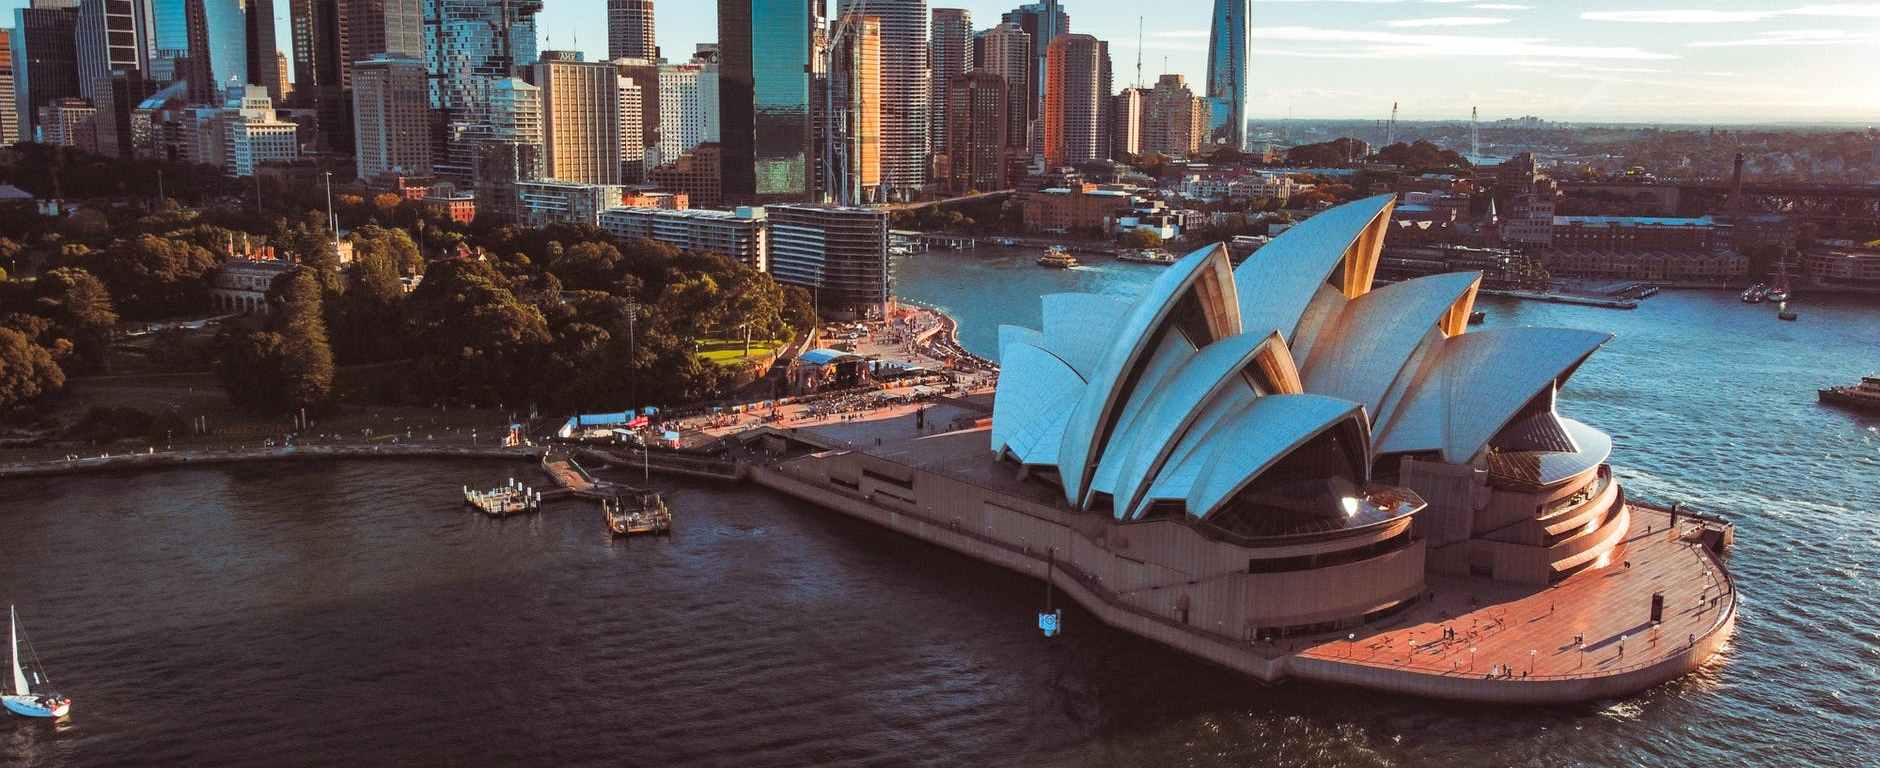 drone shot of the famous sydney opera house in australia